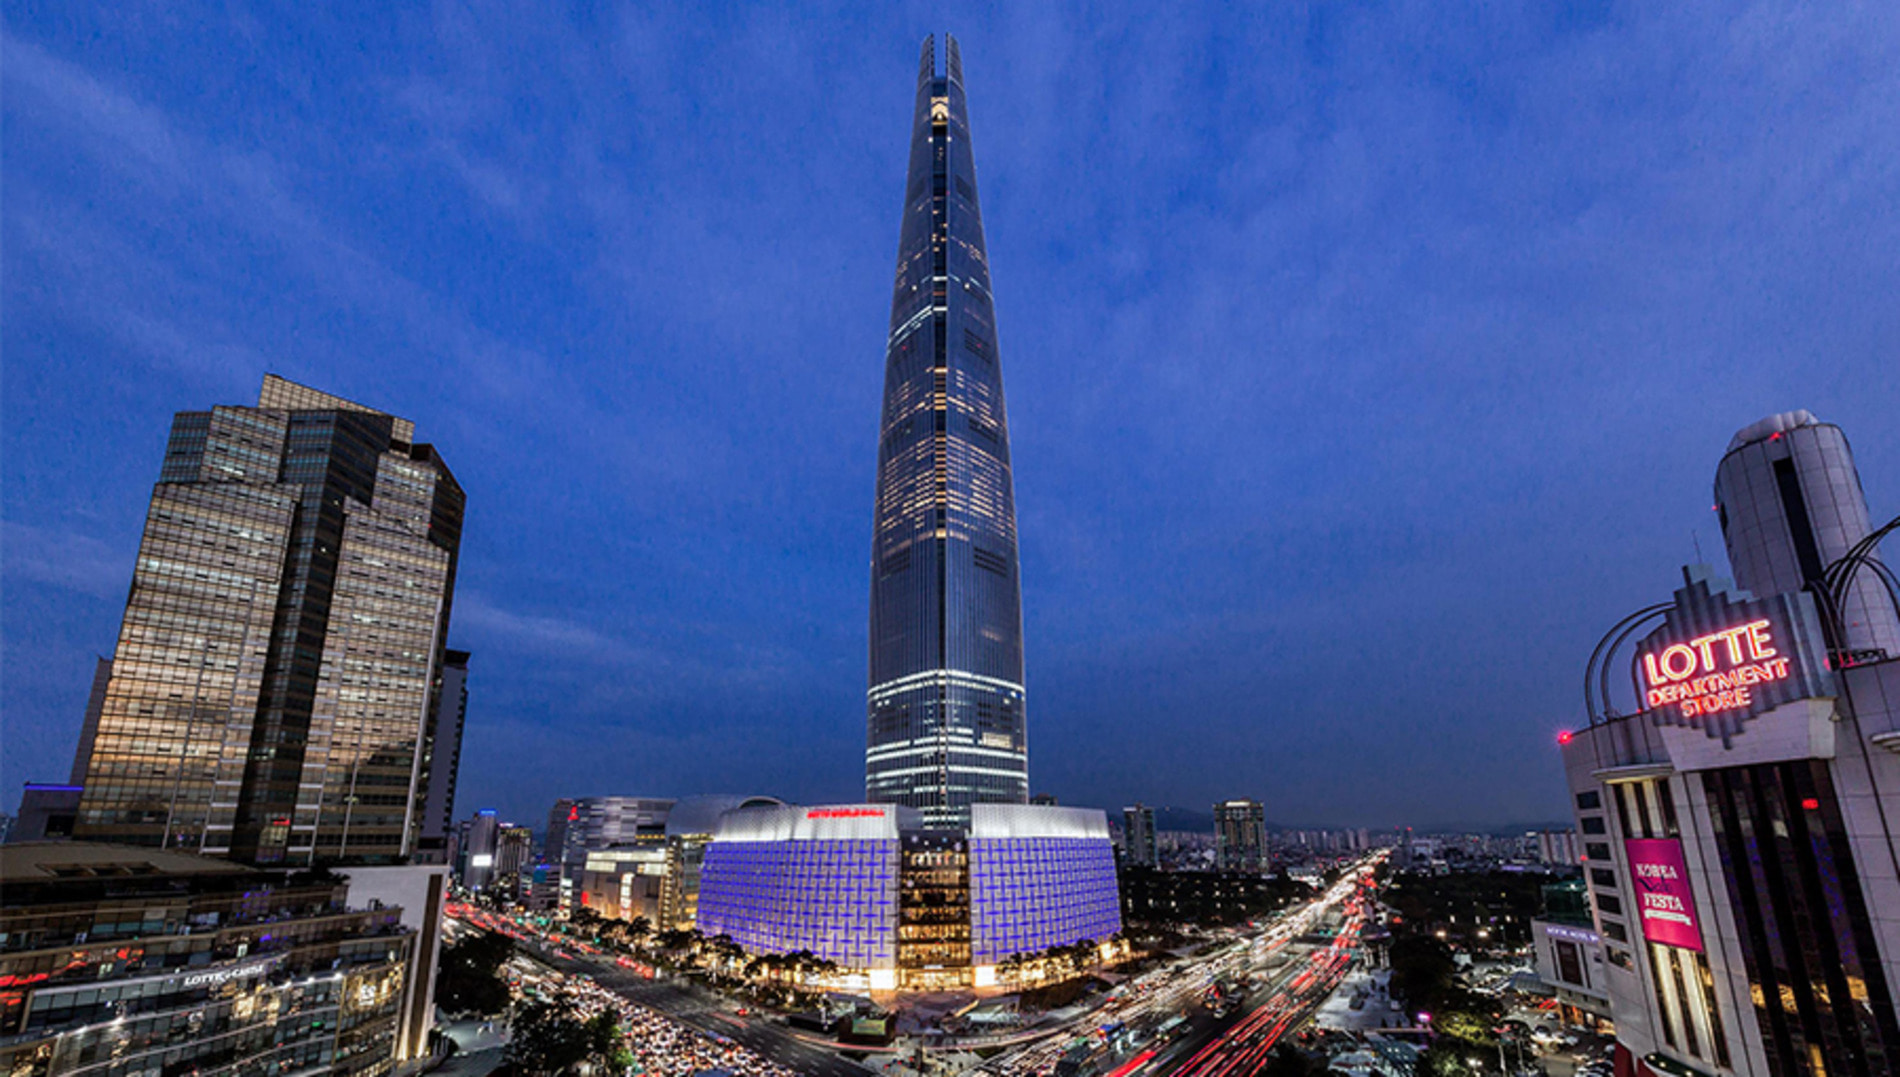 LOTTE WORLD TOWER AVENUEL - JAMSIL, SEOUL